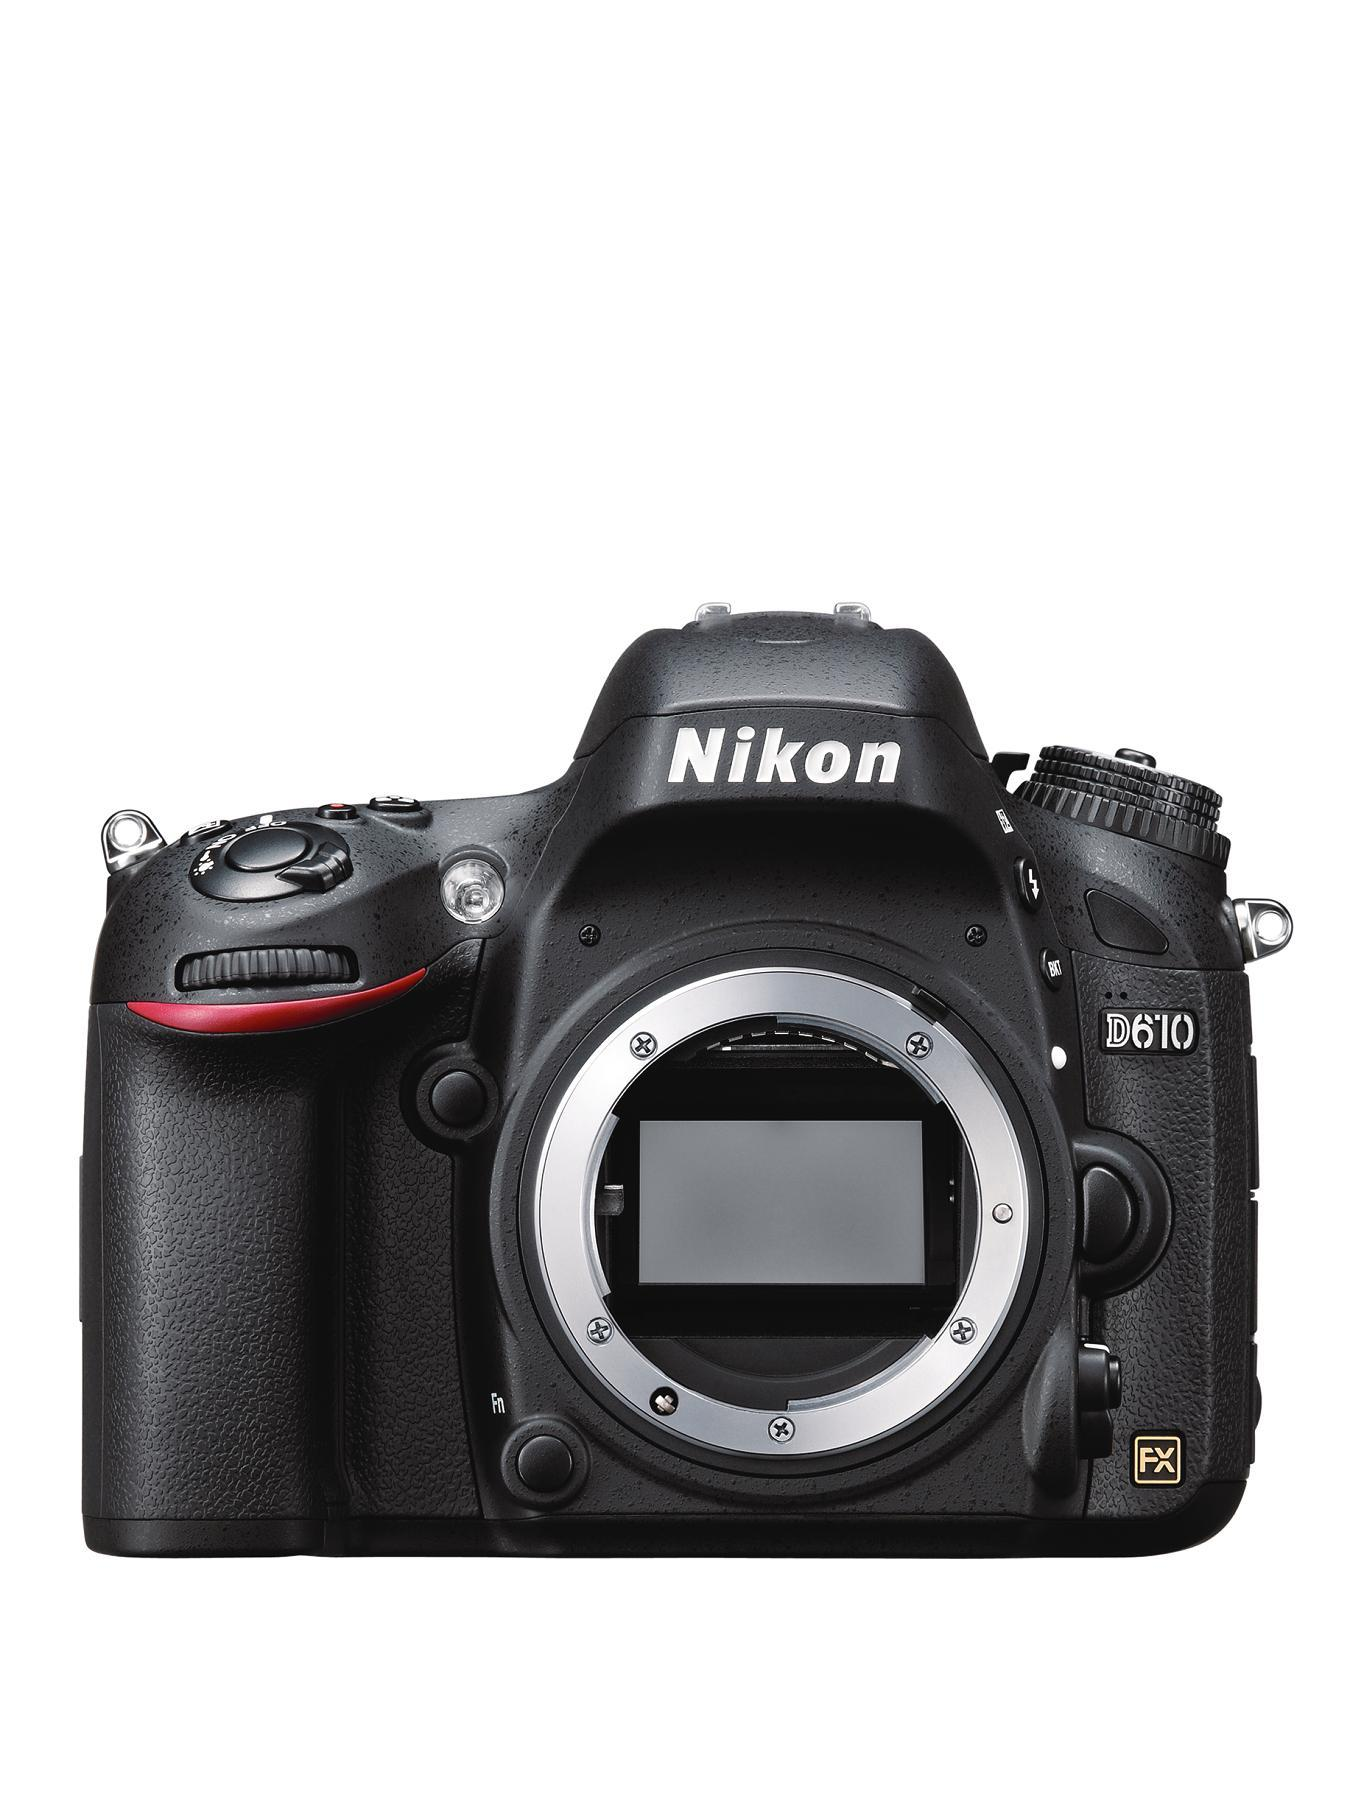 D610 24.3 Megapixel Digital SLR Camera - Body Only